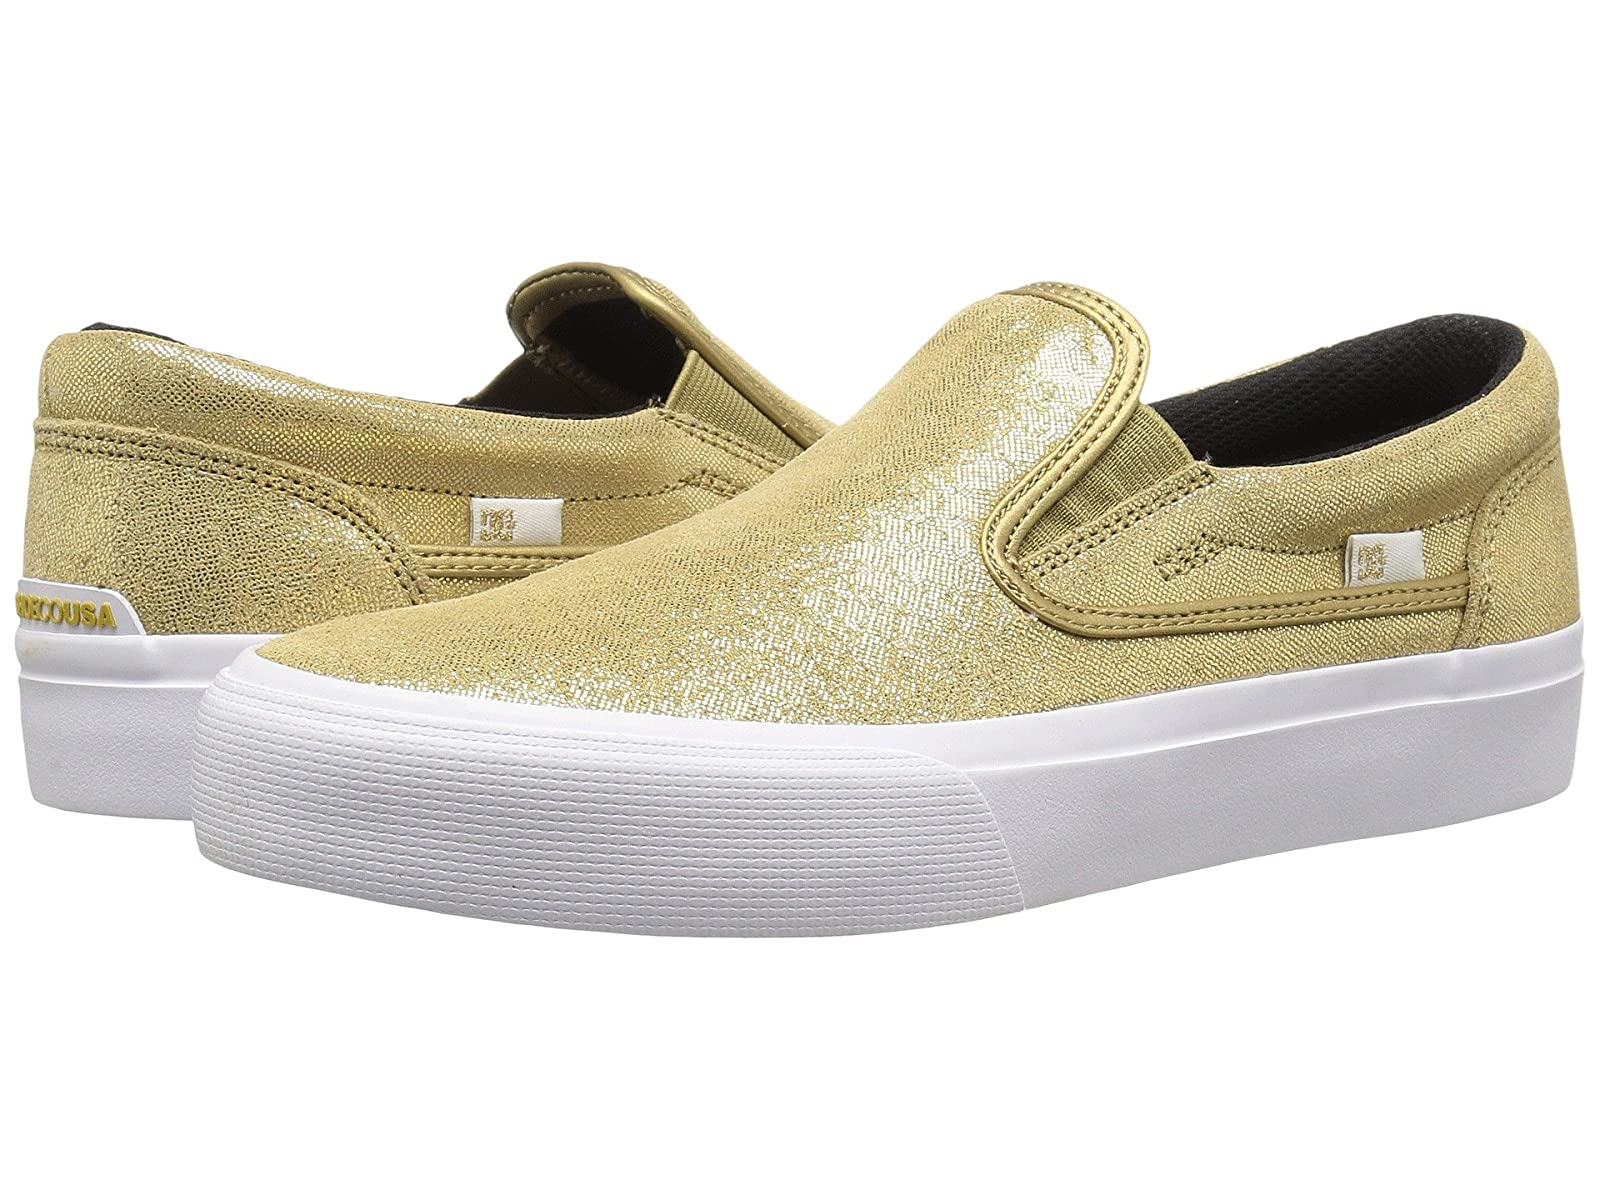 DC Trase Slip-On XECheap and distinctive eye-catching shoes